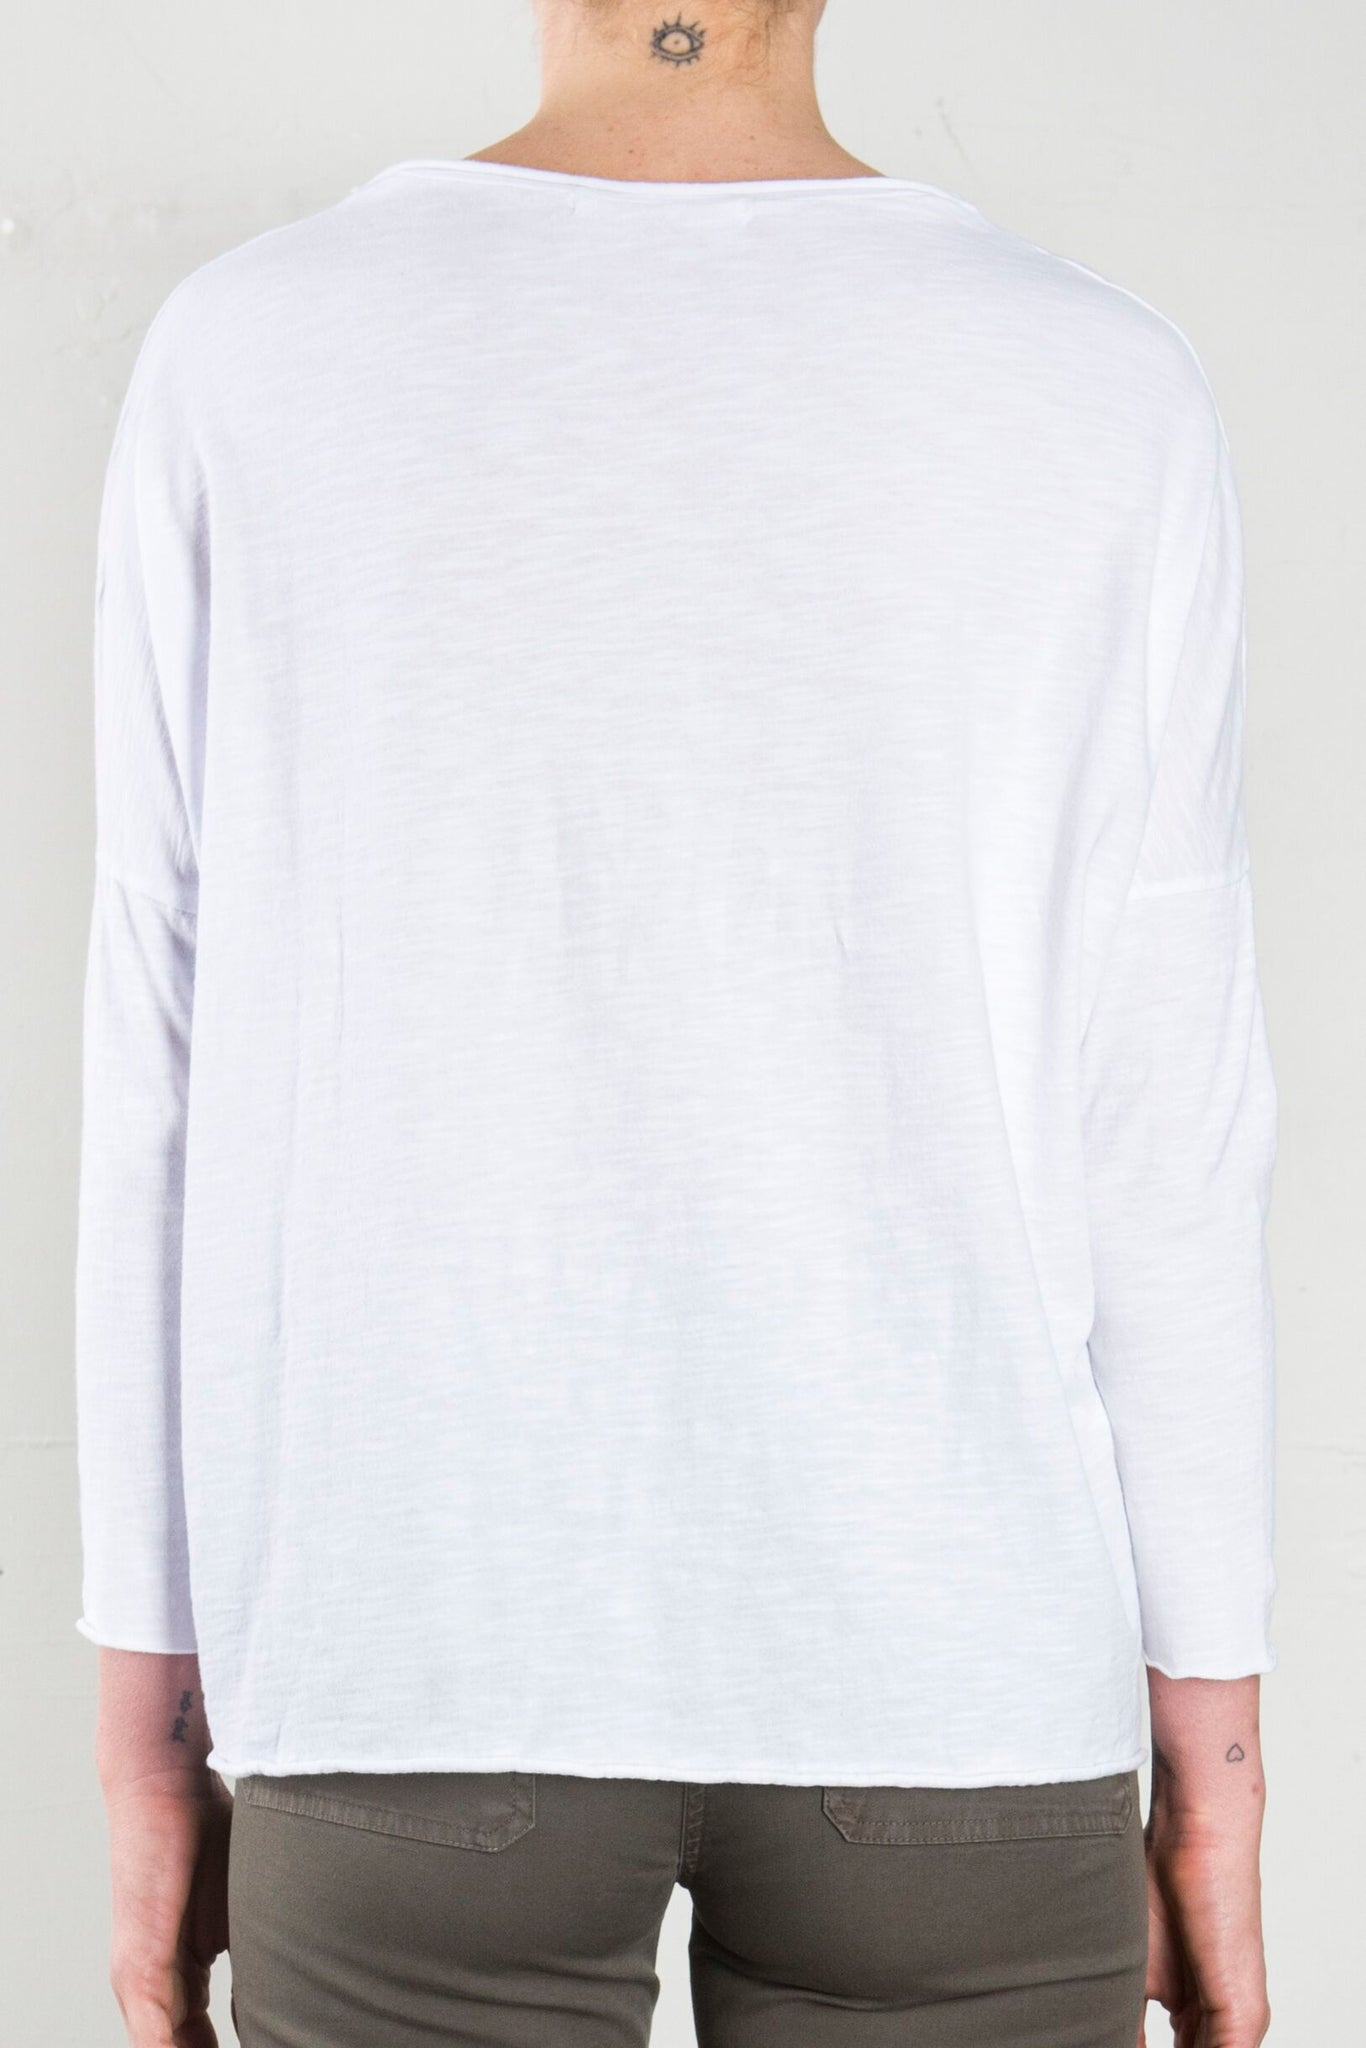 Tessa Long Sleeved Tee - White